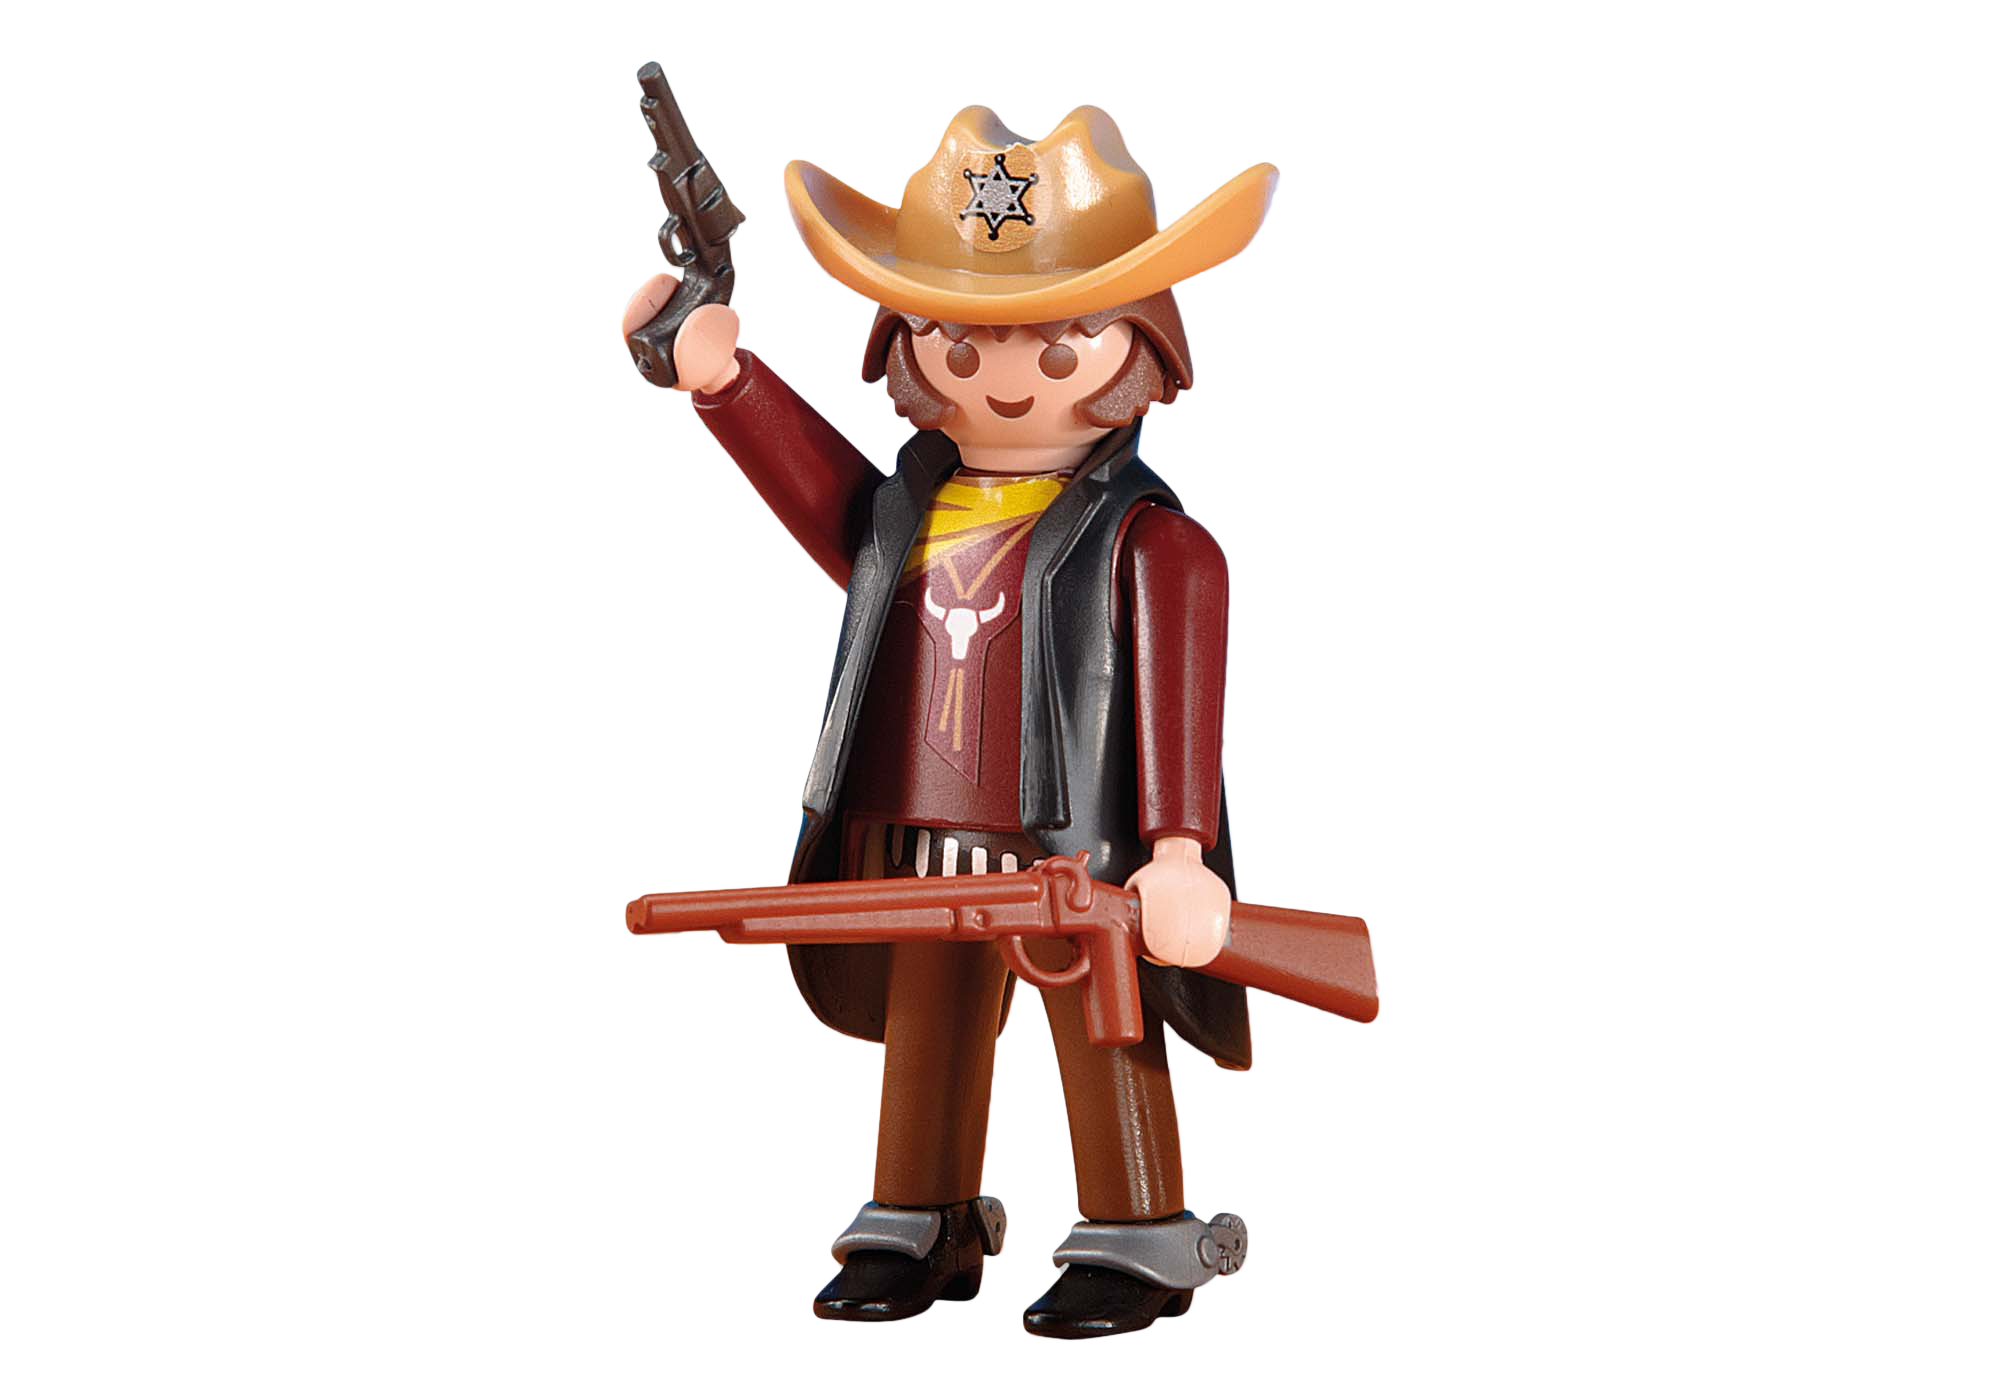 http://media.playmobil.com/i/playmobil/6277_product_detail/Sceriffo western